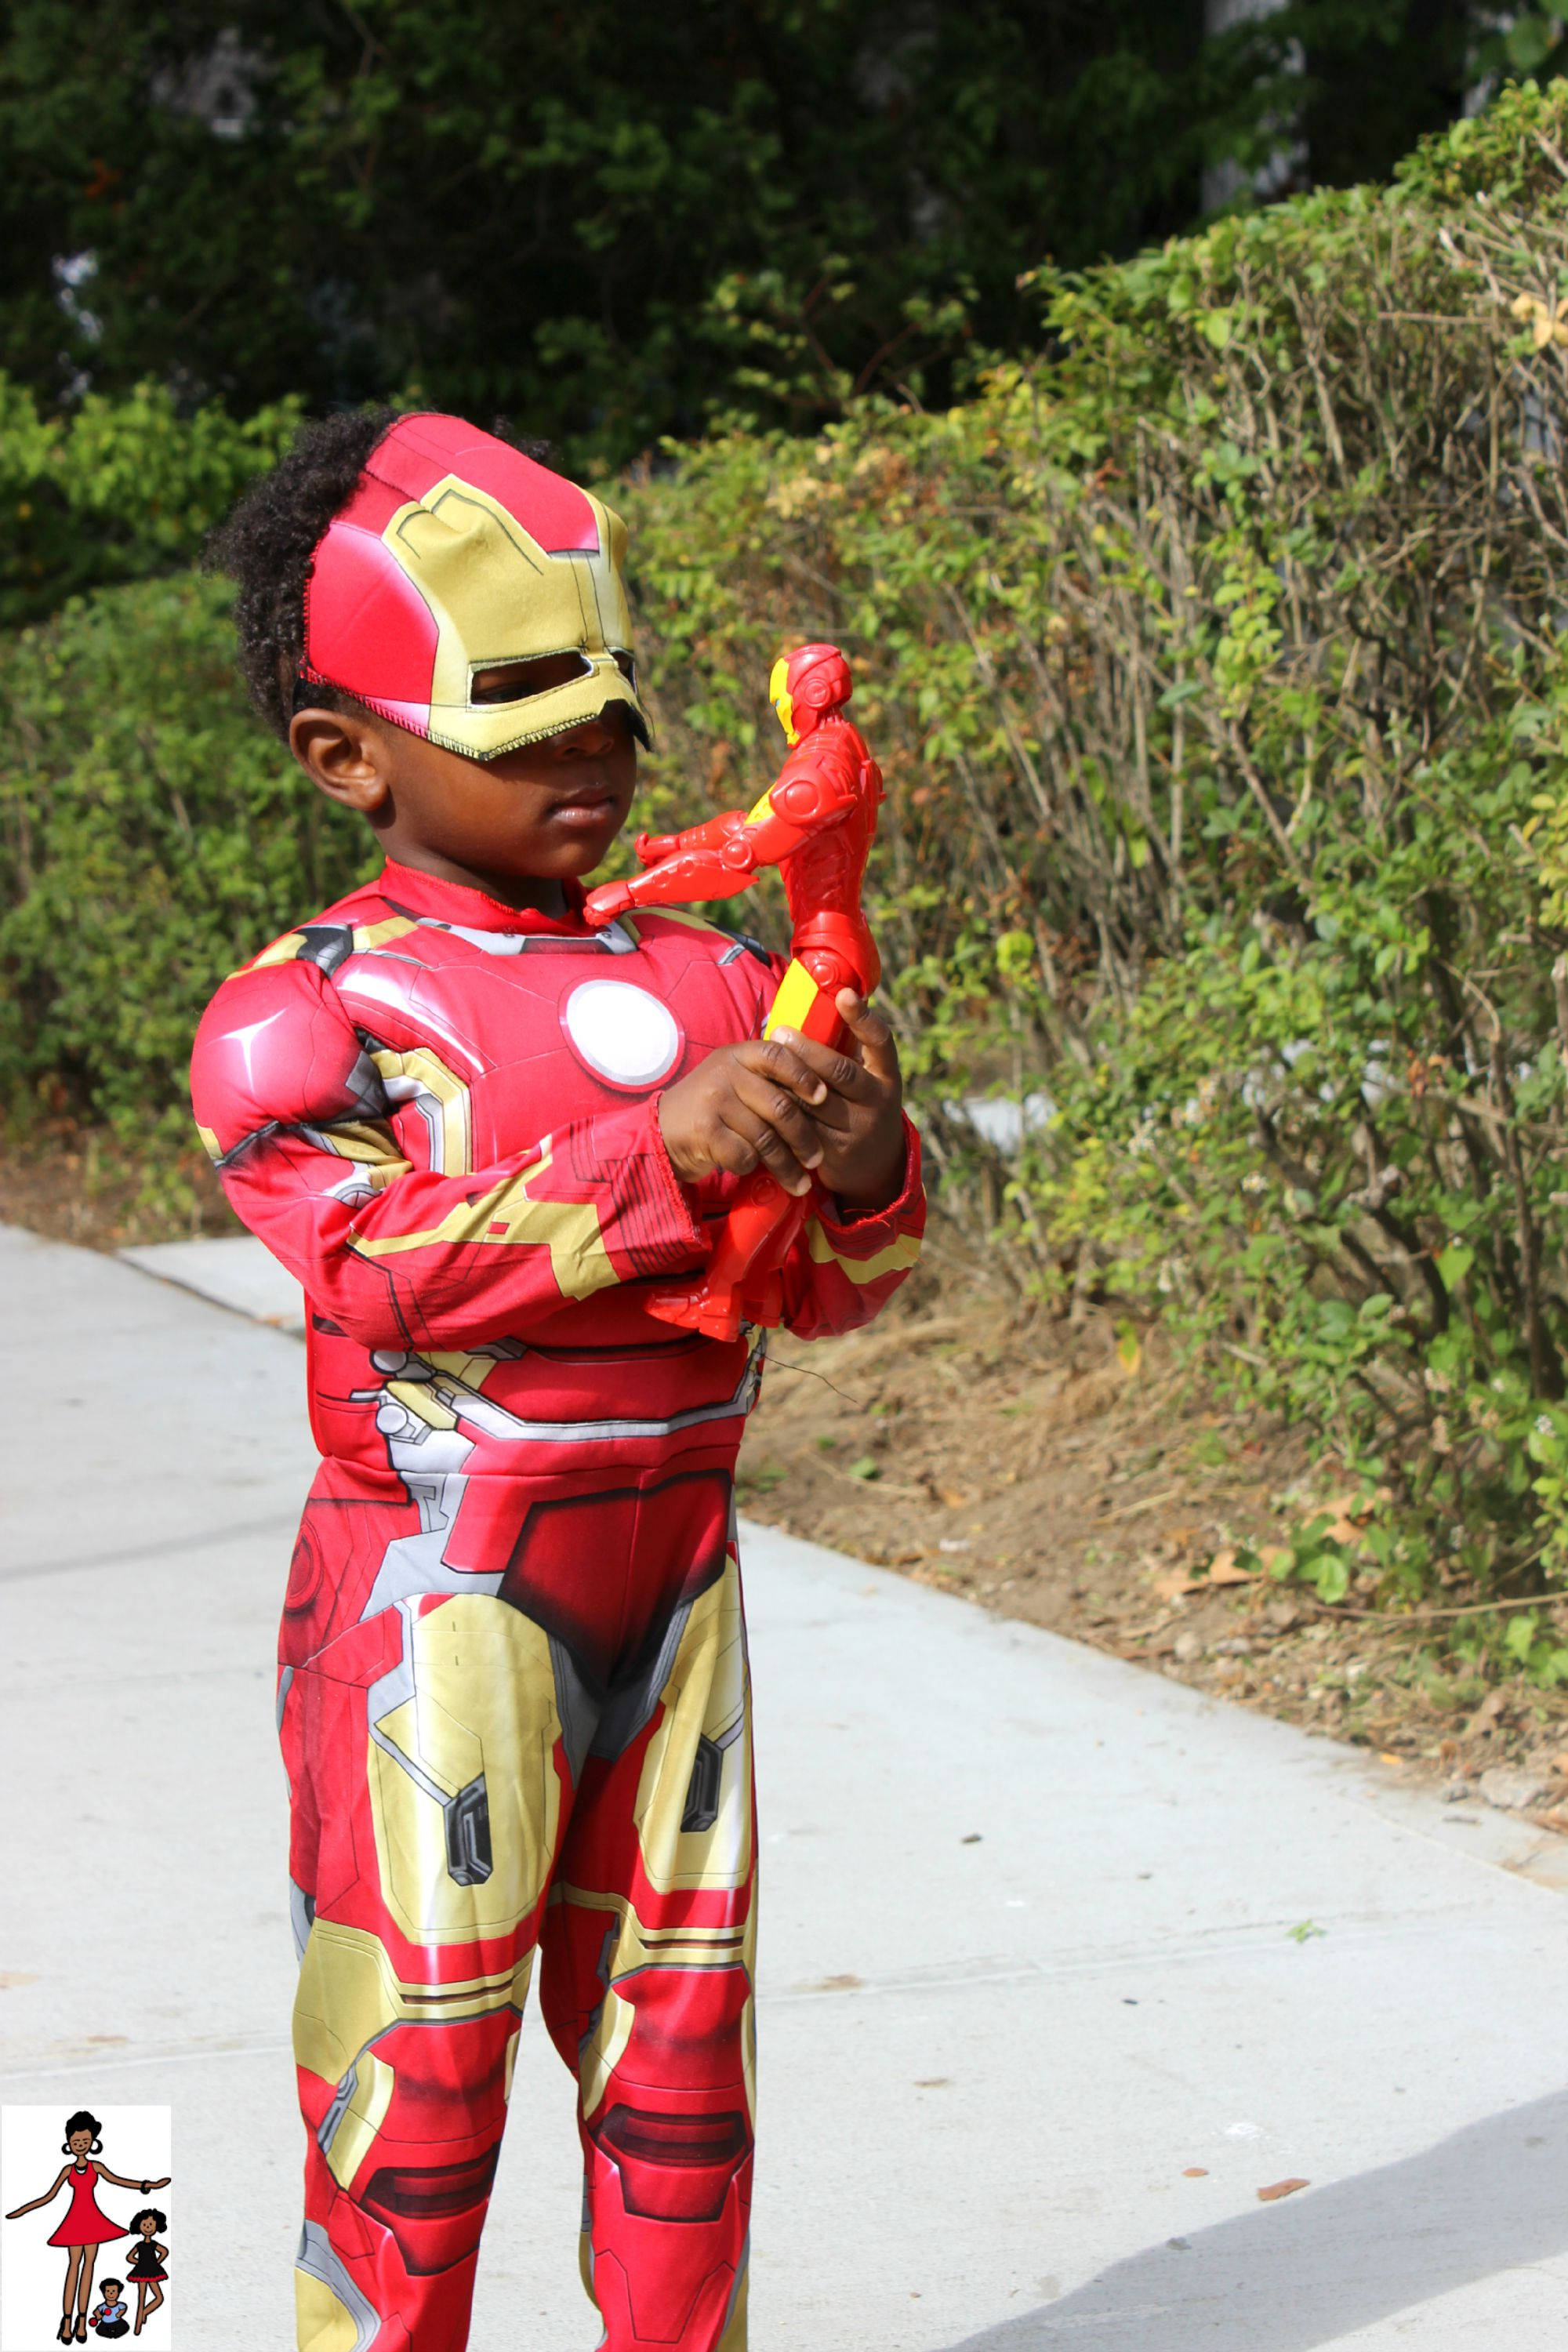 ironman-costume-children